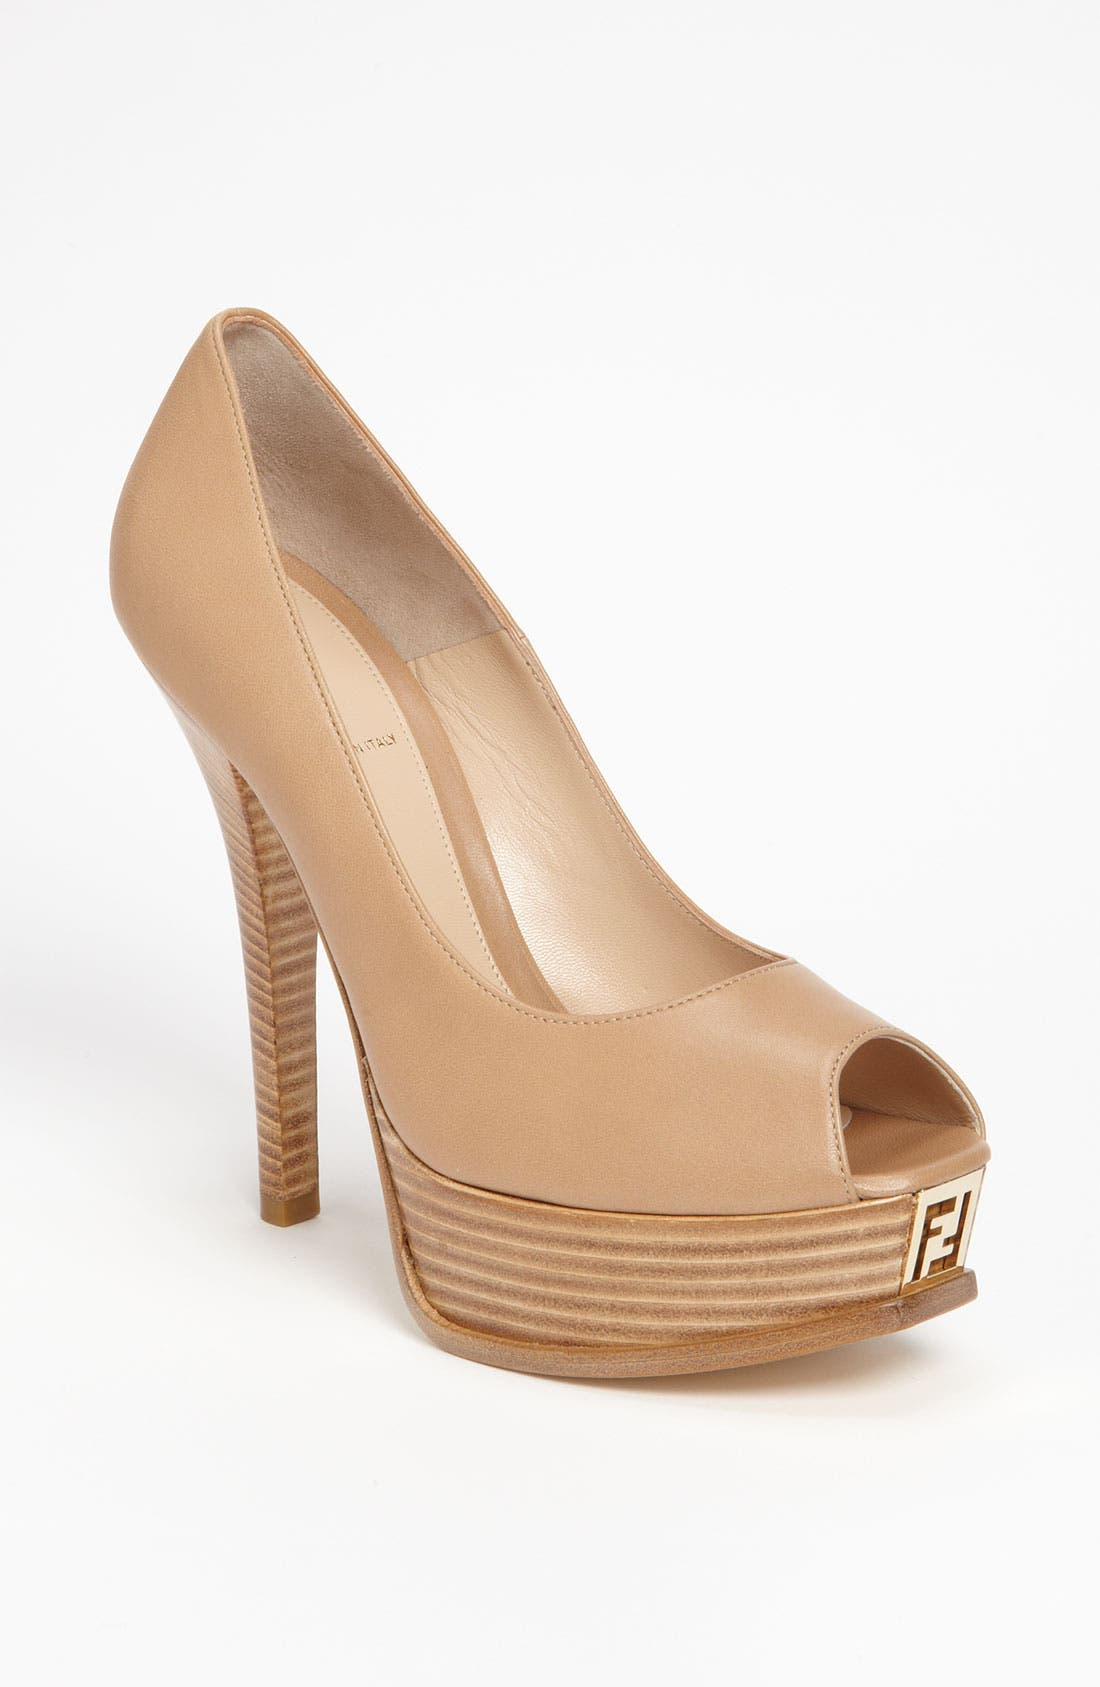 Alternate Image 1 Selected - Fendi 'Fendista' Pump